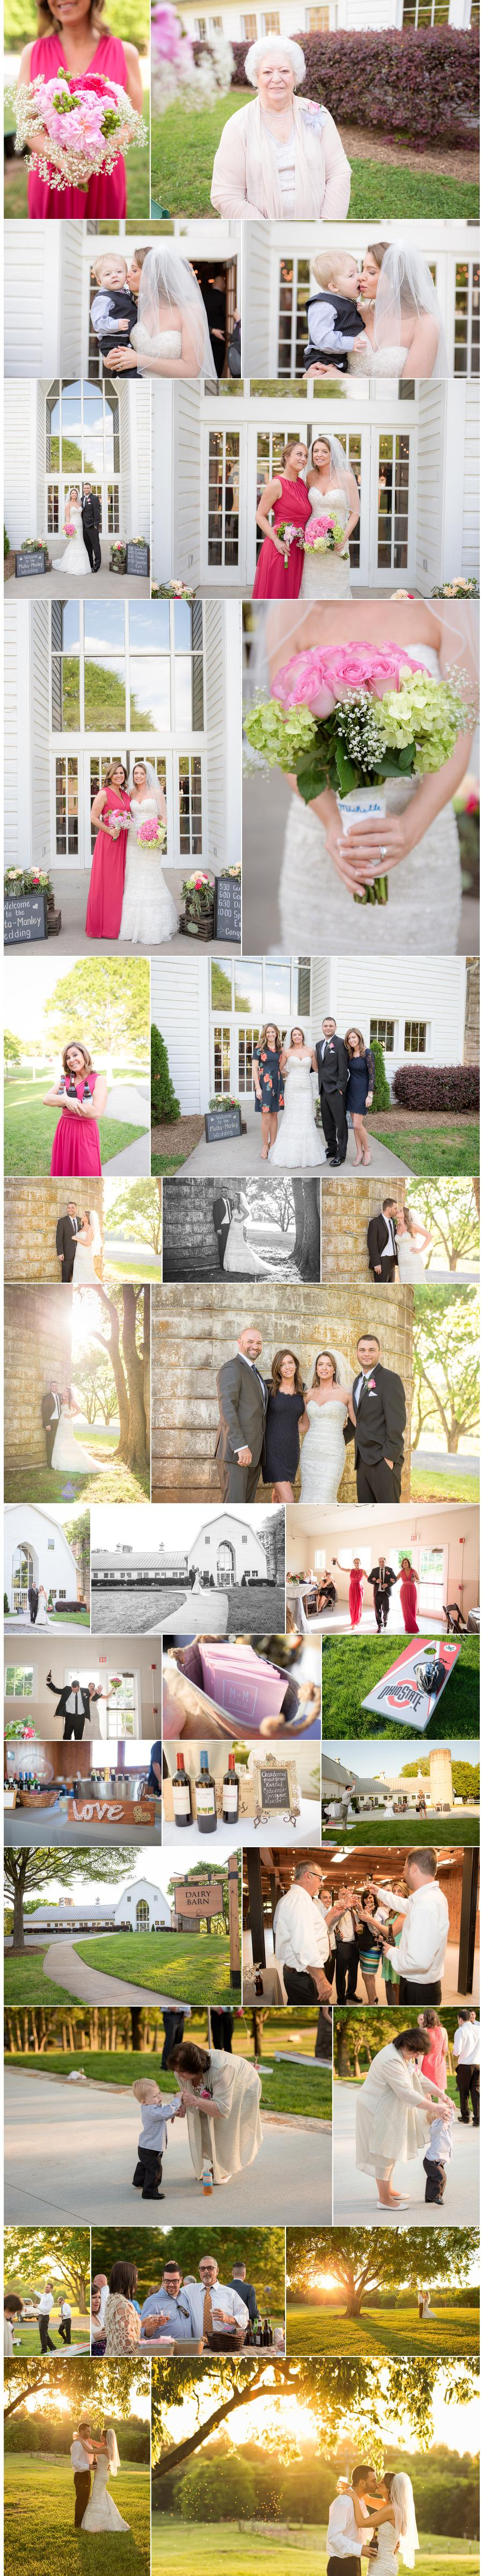 wedding at fort mill dairy barn